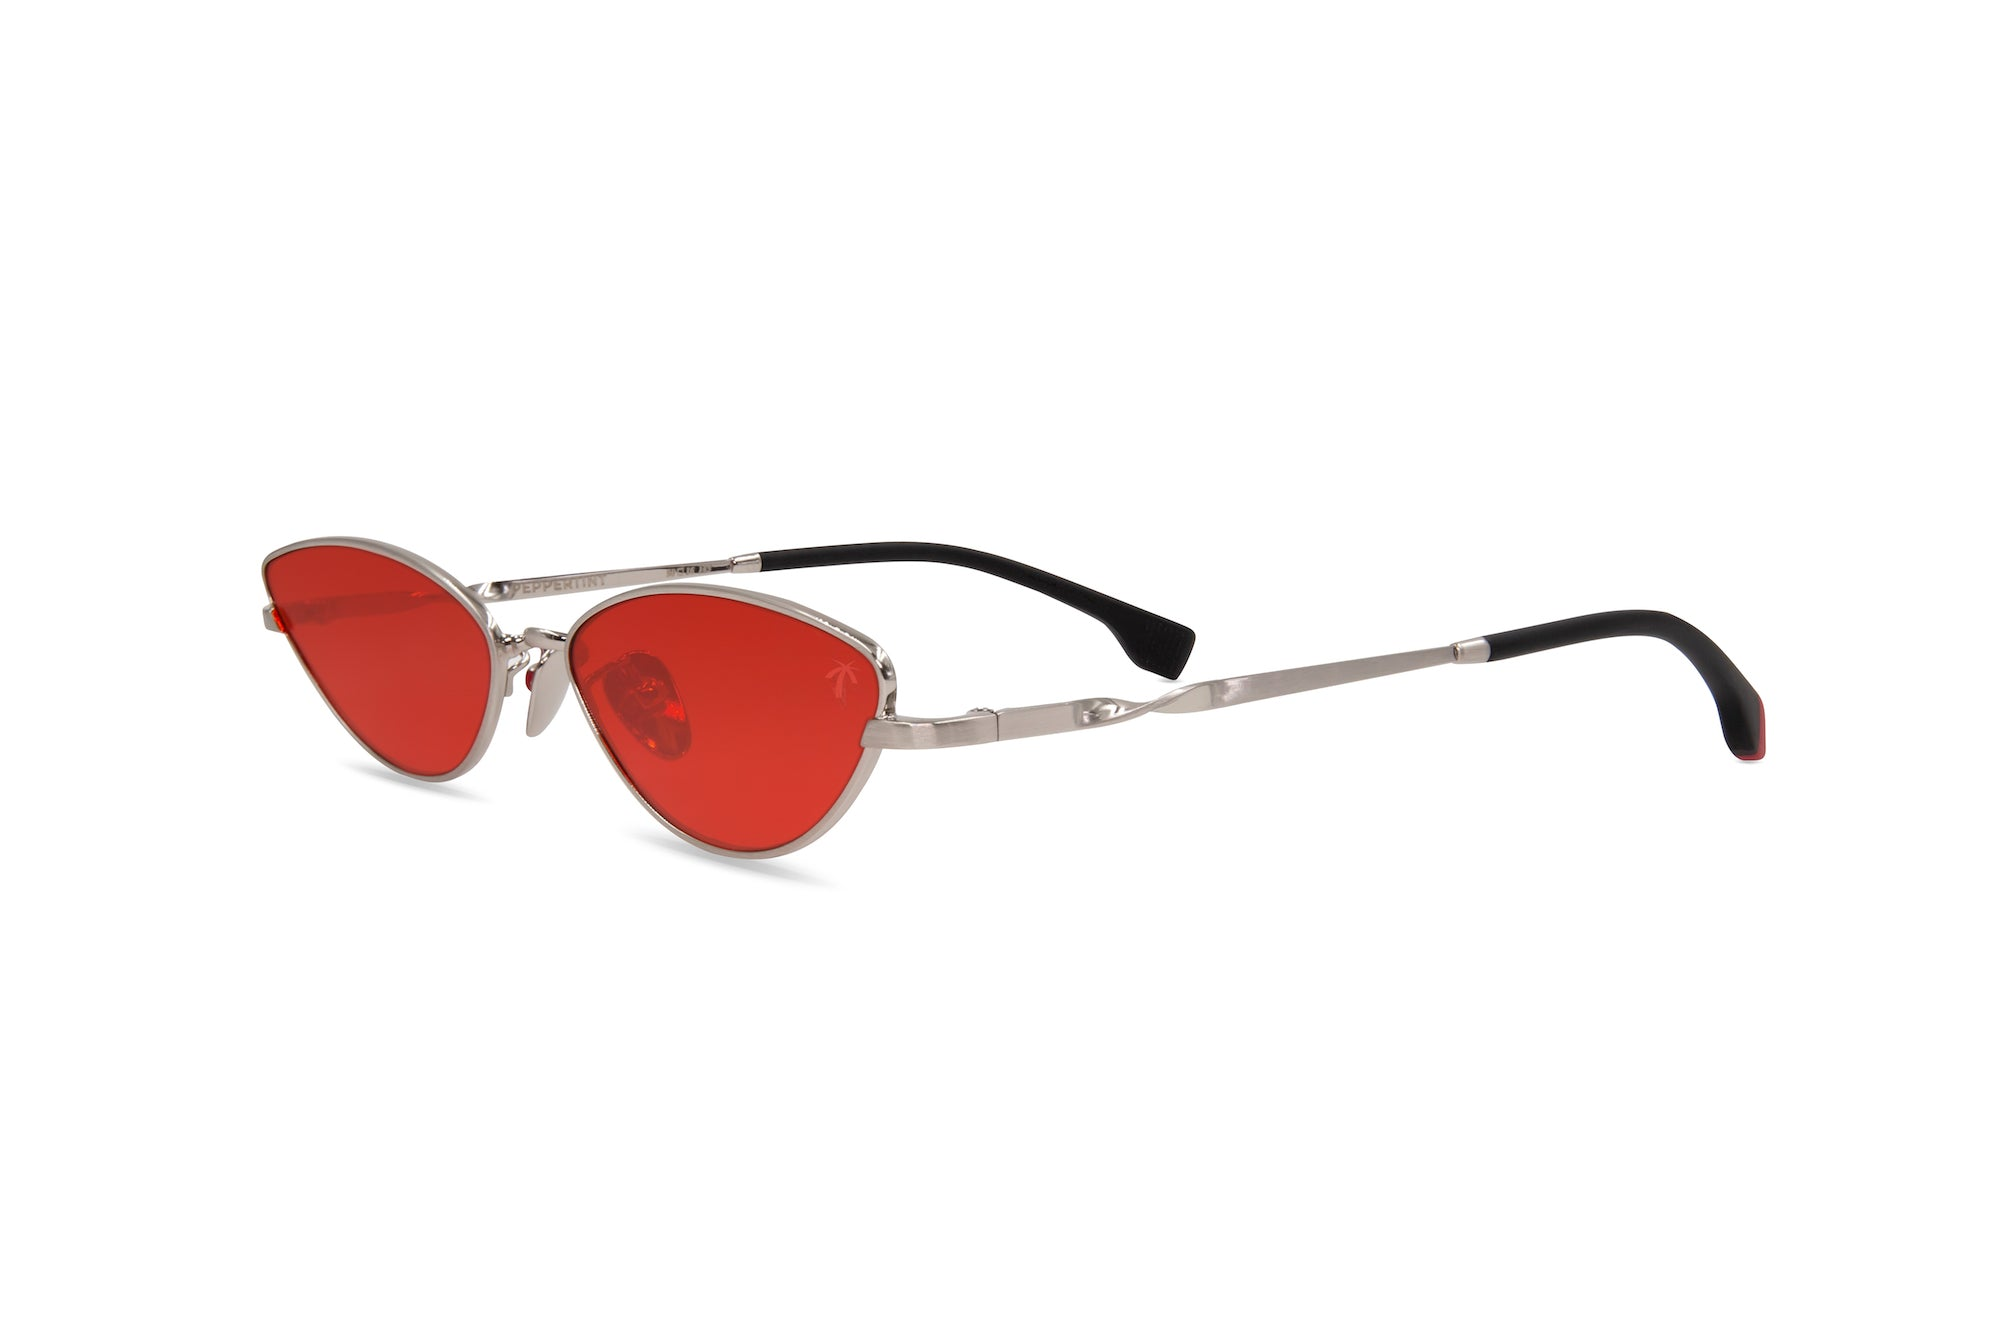 Alameda in Red - Peppertint - Designer sunglasses